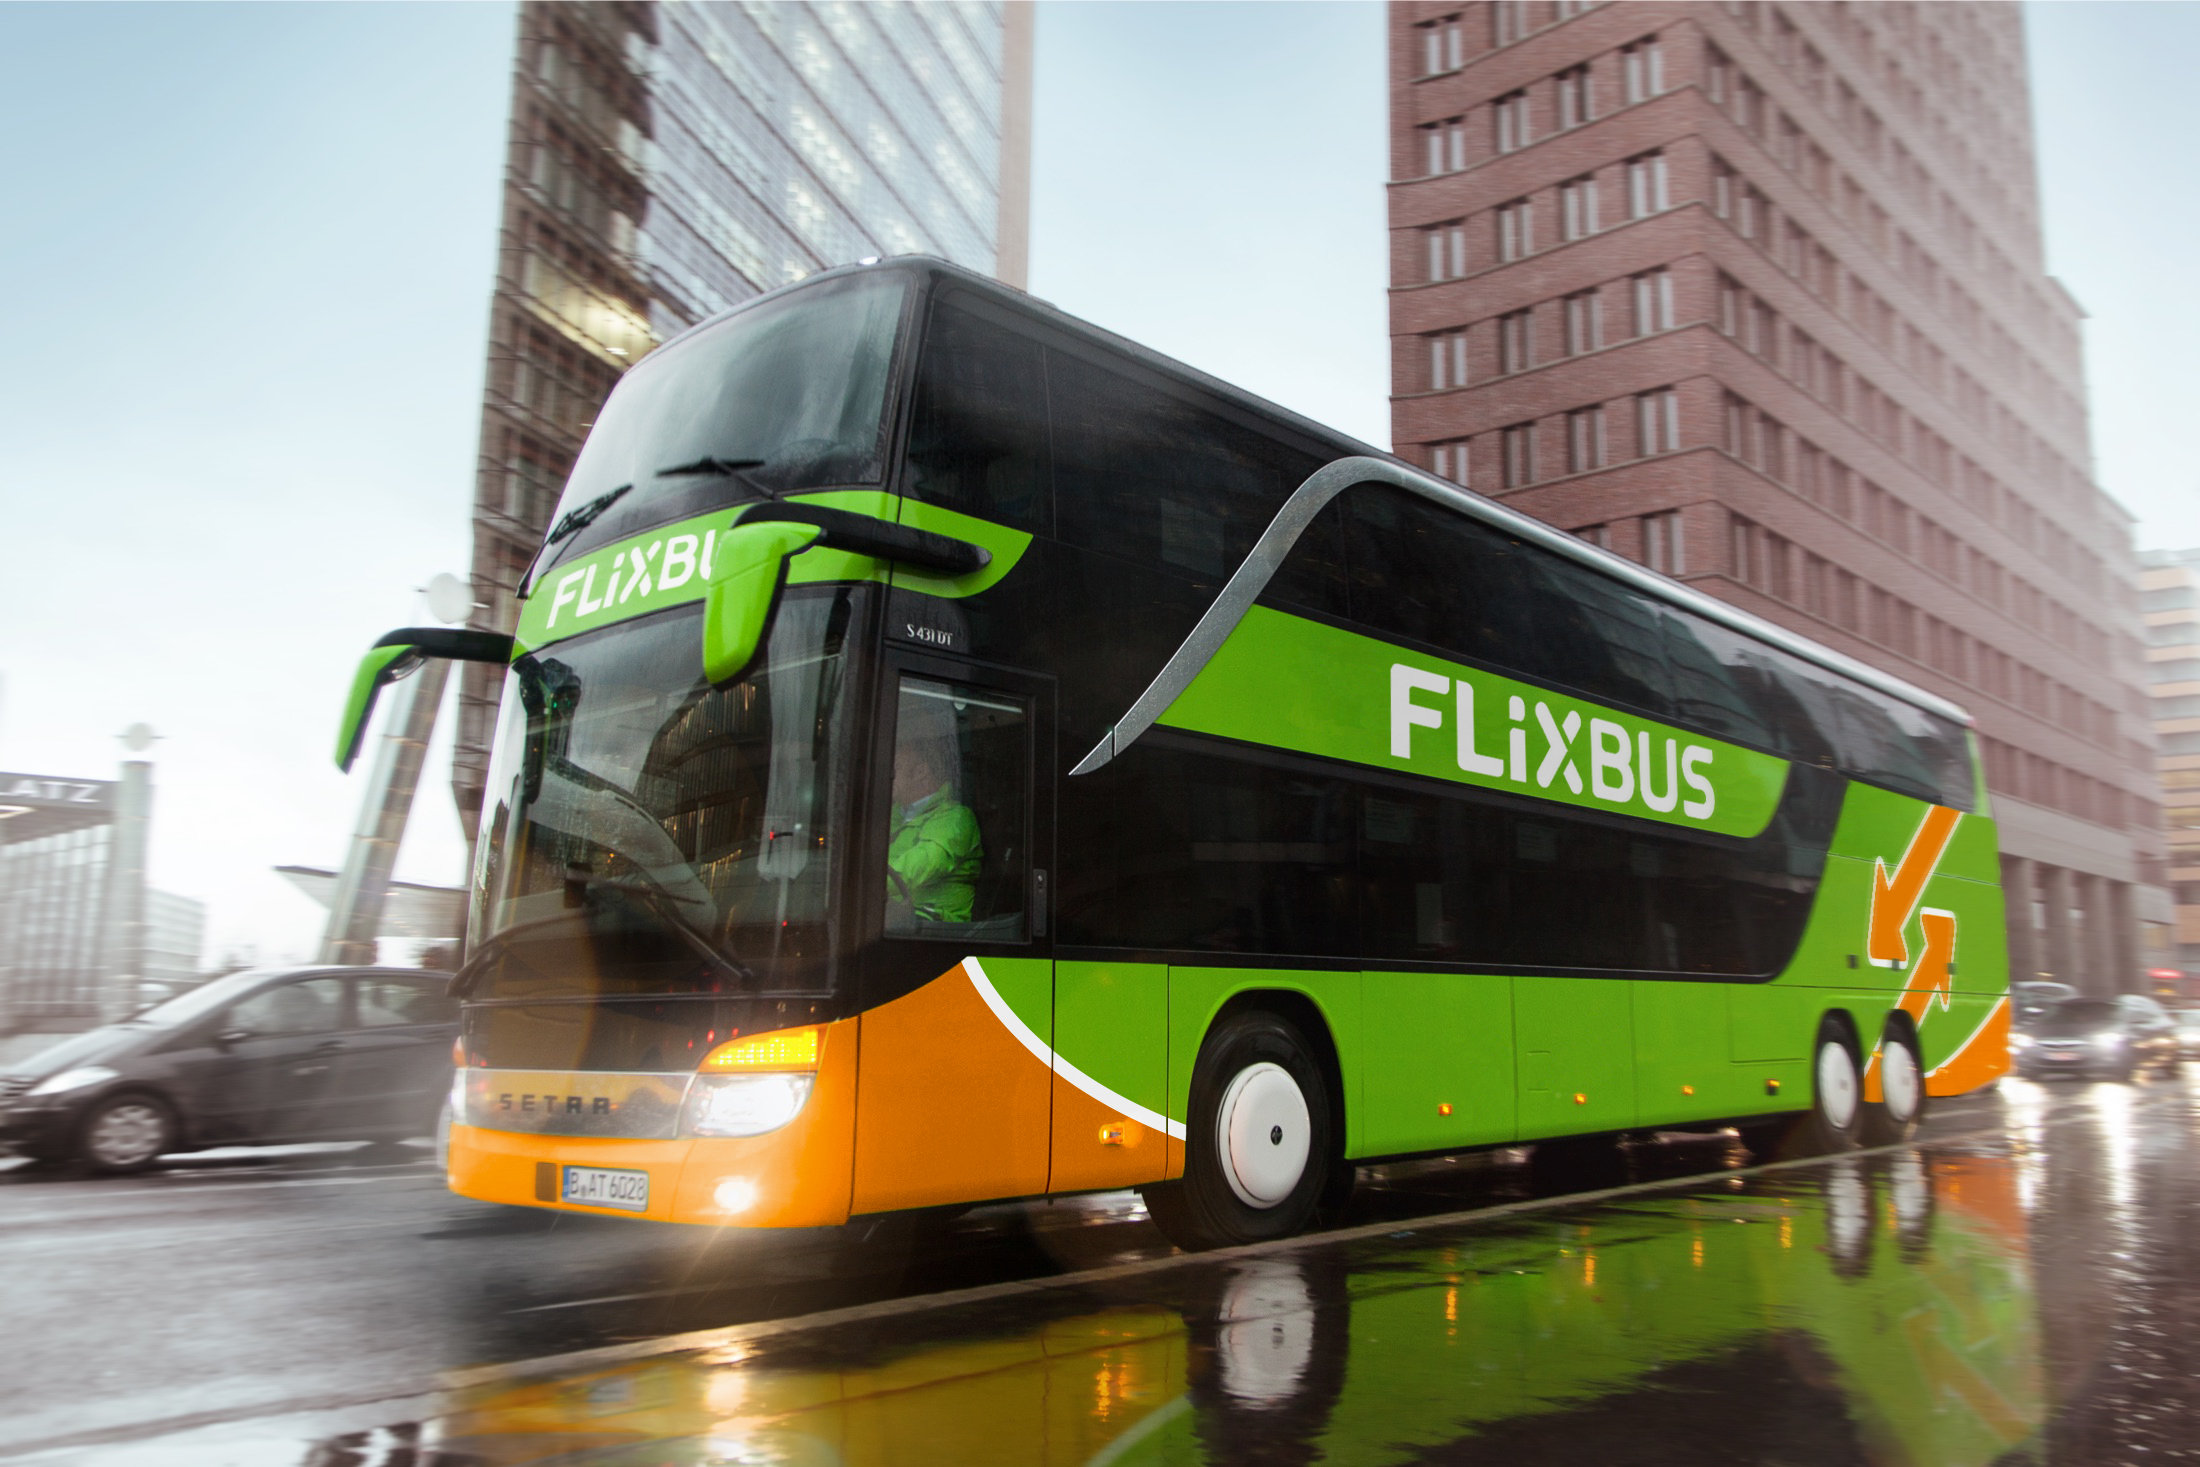 FlixBus awards Icomera contract to deliver next-generation Wi-Fi and Infotainment to passengers